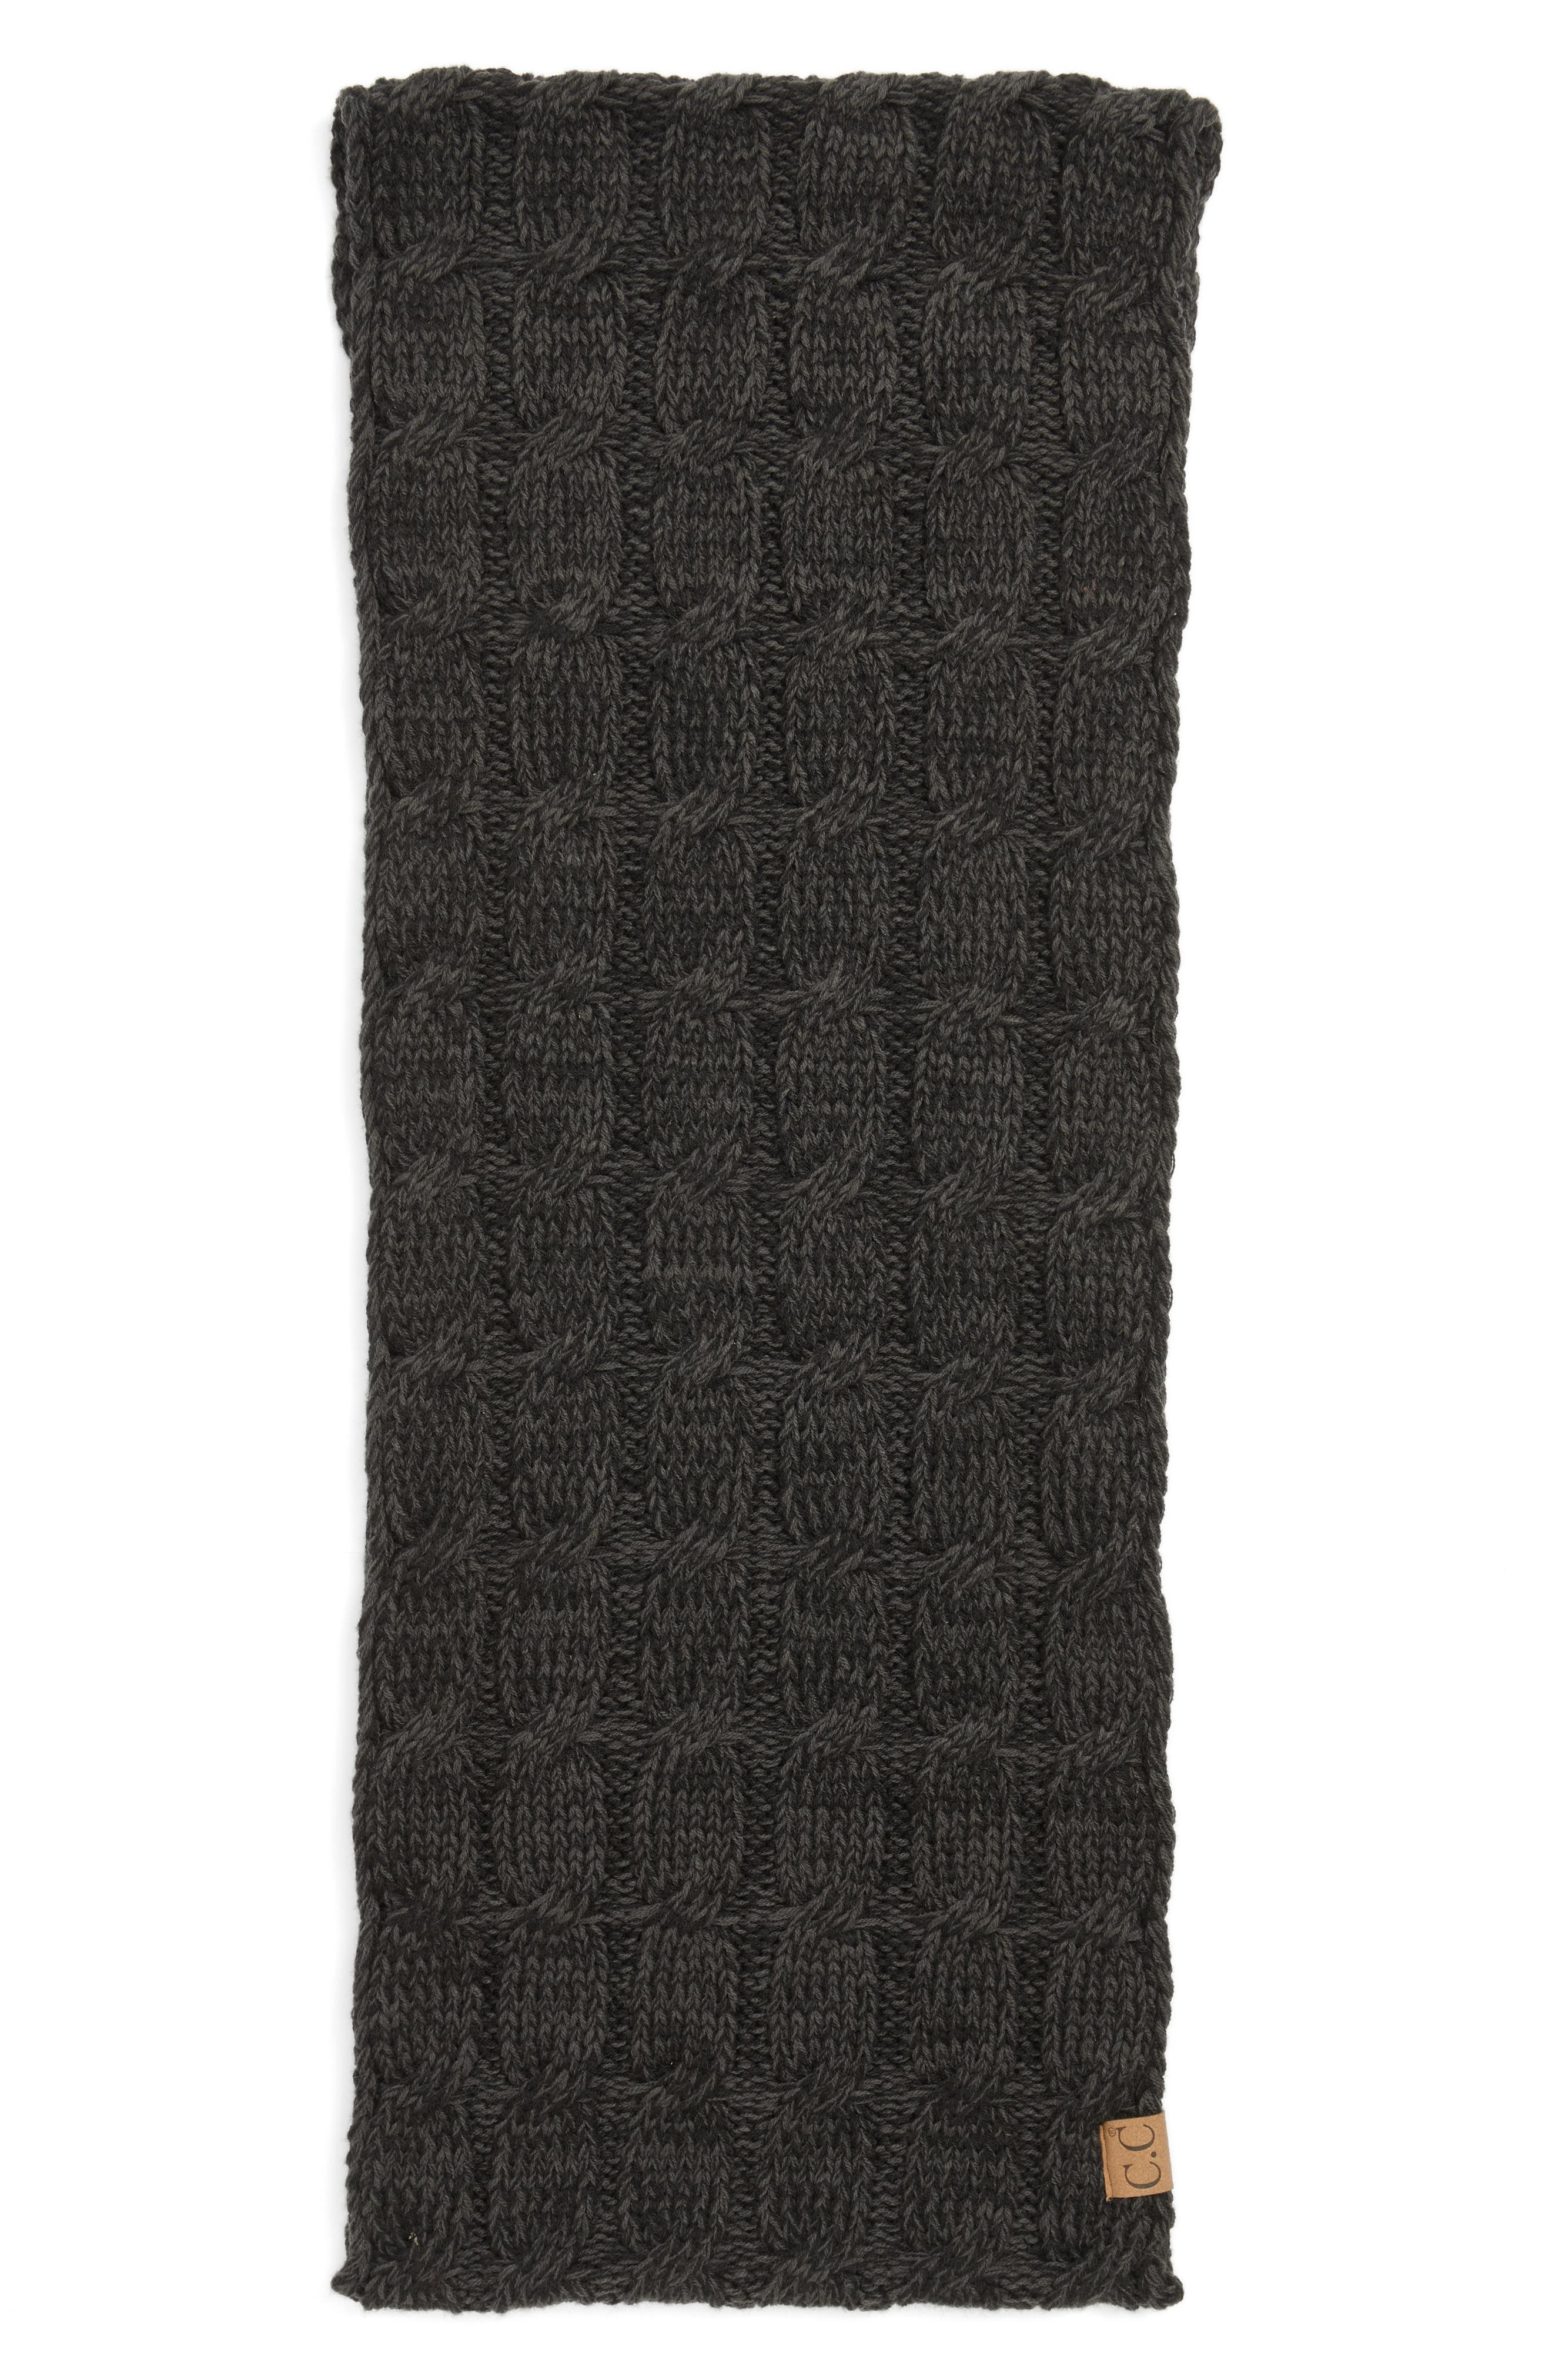 Knit Infinity Scarf,                             Alternate thumbnail 2, color,                             Black/ Grey